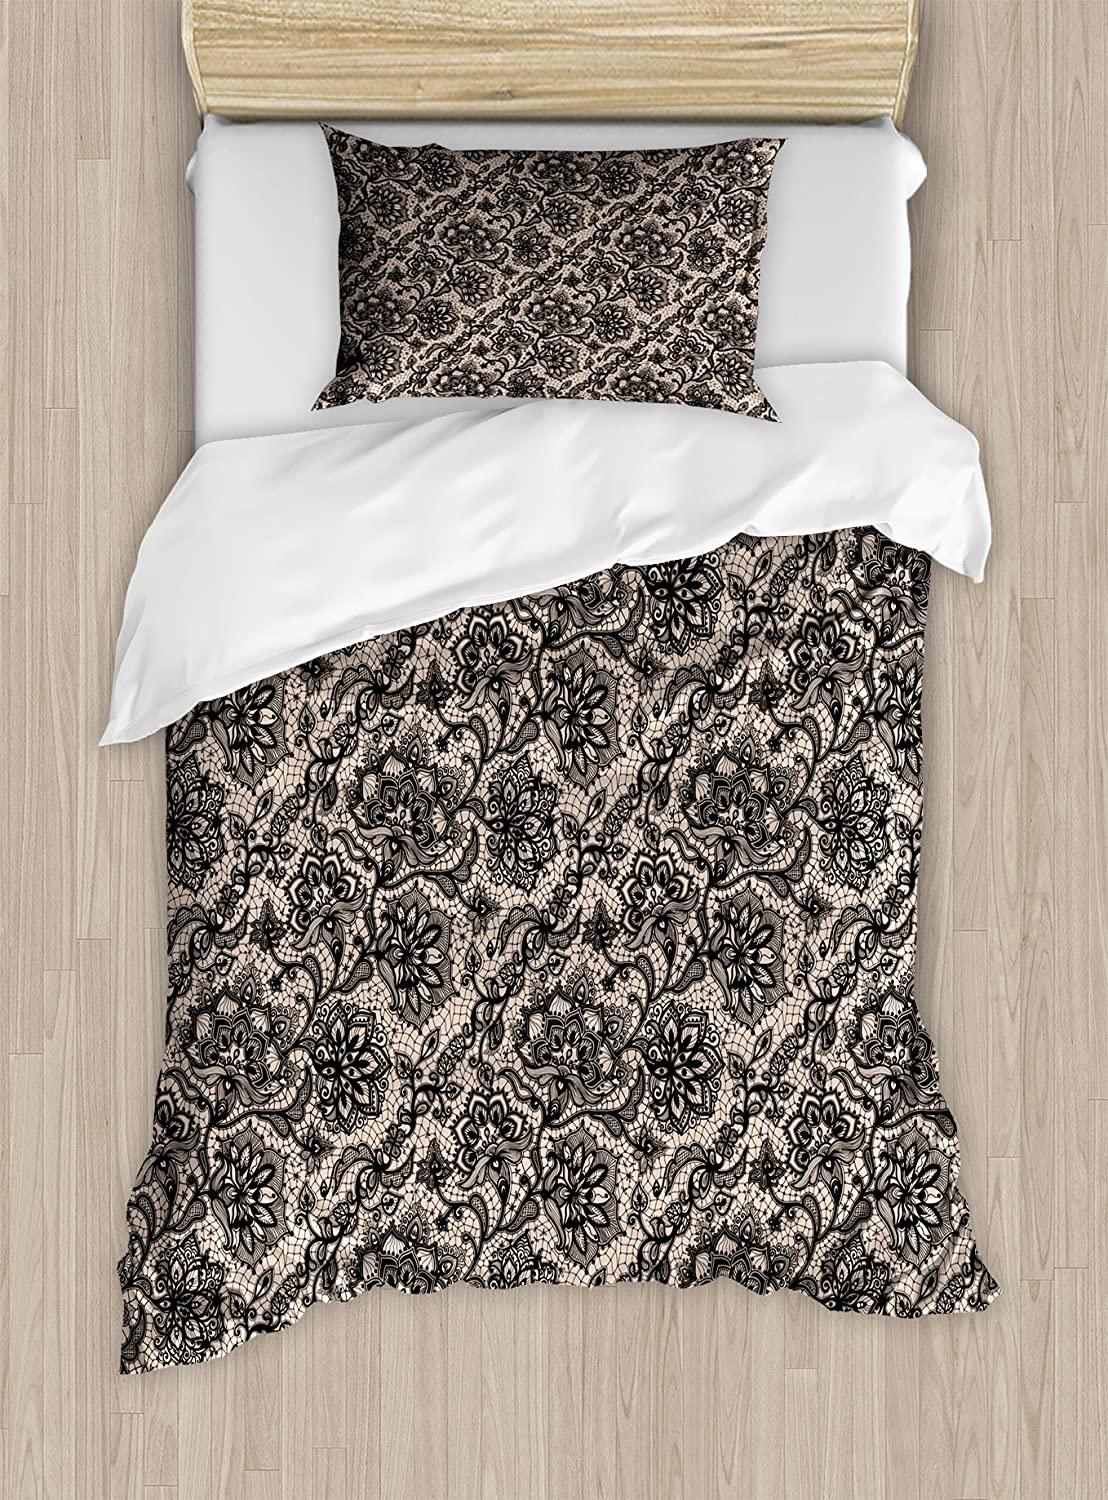 Ambesonne Gothic Duvet Cover Set, Abstract Graphic Lace Pattern with Flowers Butterflies Old Fashioned Nature Inspired, Decorative 2 Piece Bedding Set with 1 Pillow Sham, Twin Size, Black Tan